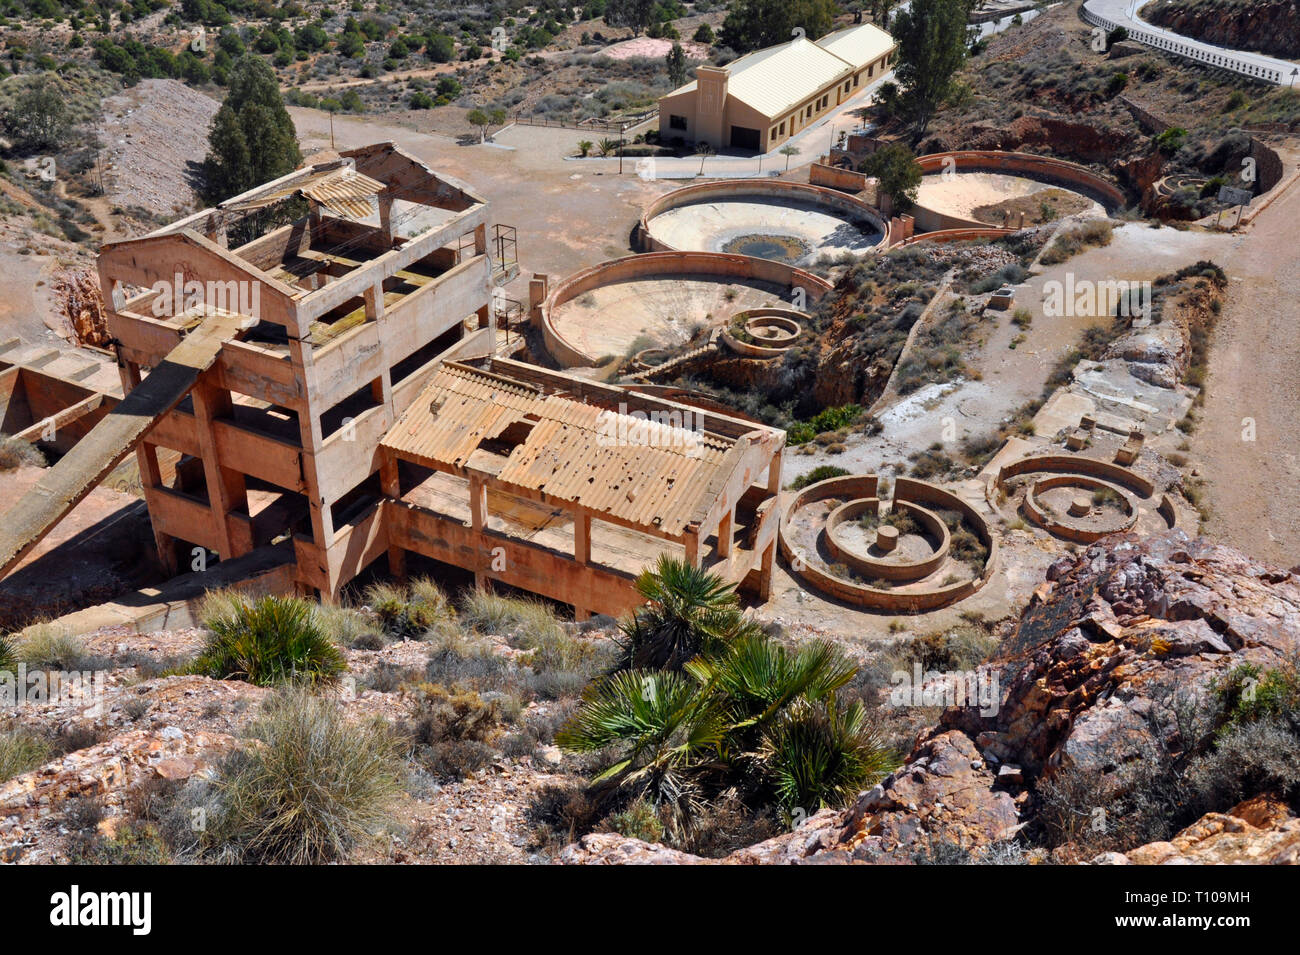 Formerly, one of the largest goldmines in Europe, the open cast mine site at Rodalquilar has been used as a film location since its closure in 1966. - Stock Image